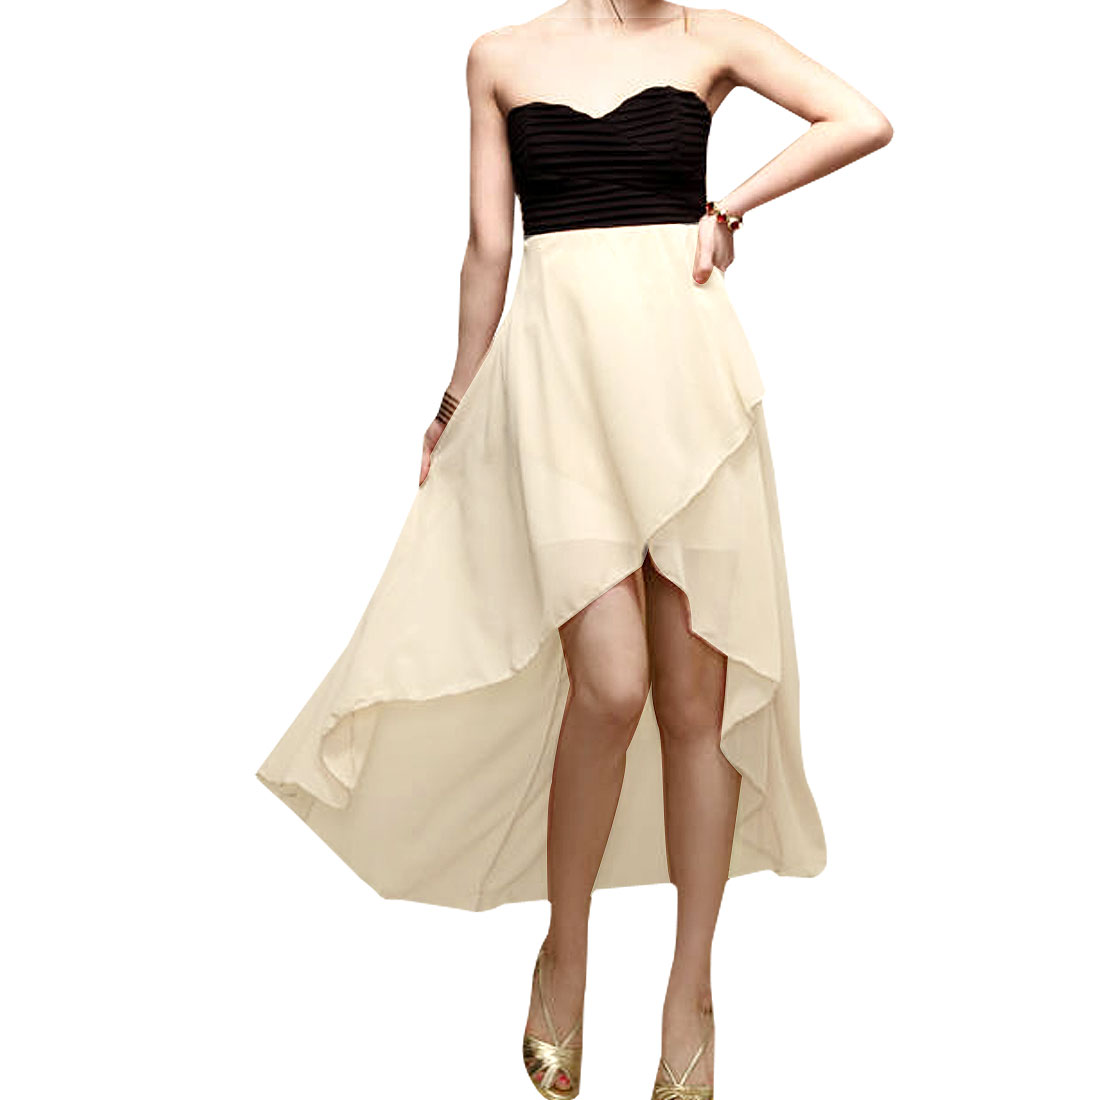 Ladies Sleeveless Black Back Hollow Out Cross Beige Chiffon Tube Dress XS